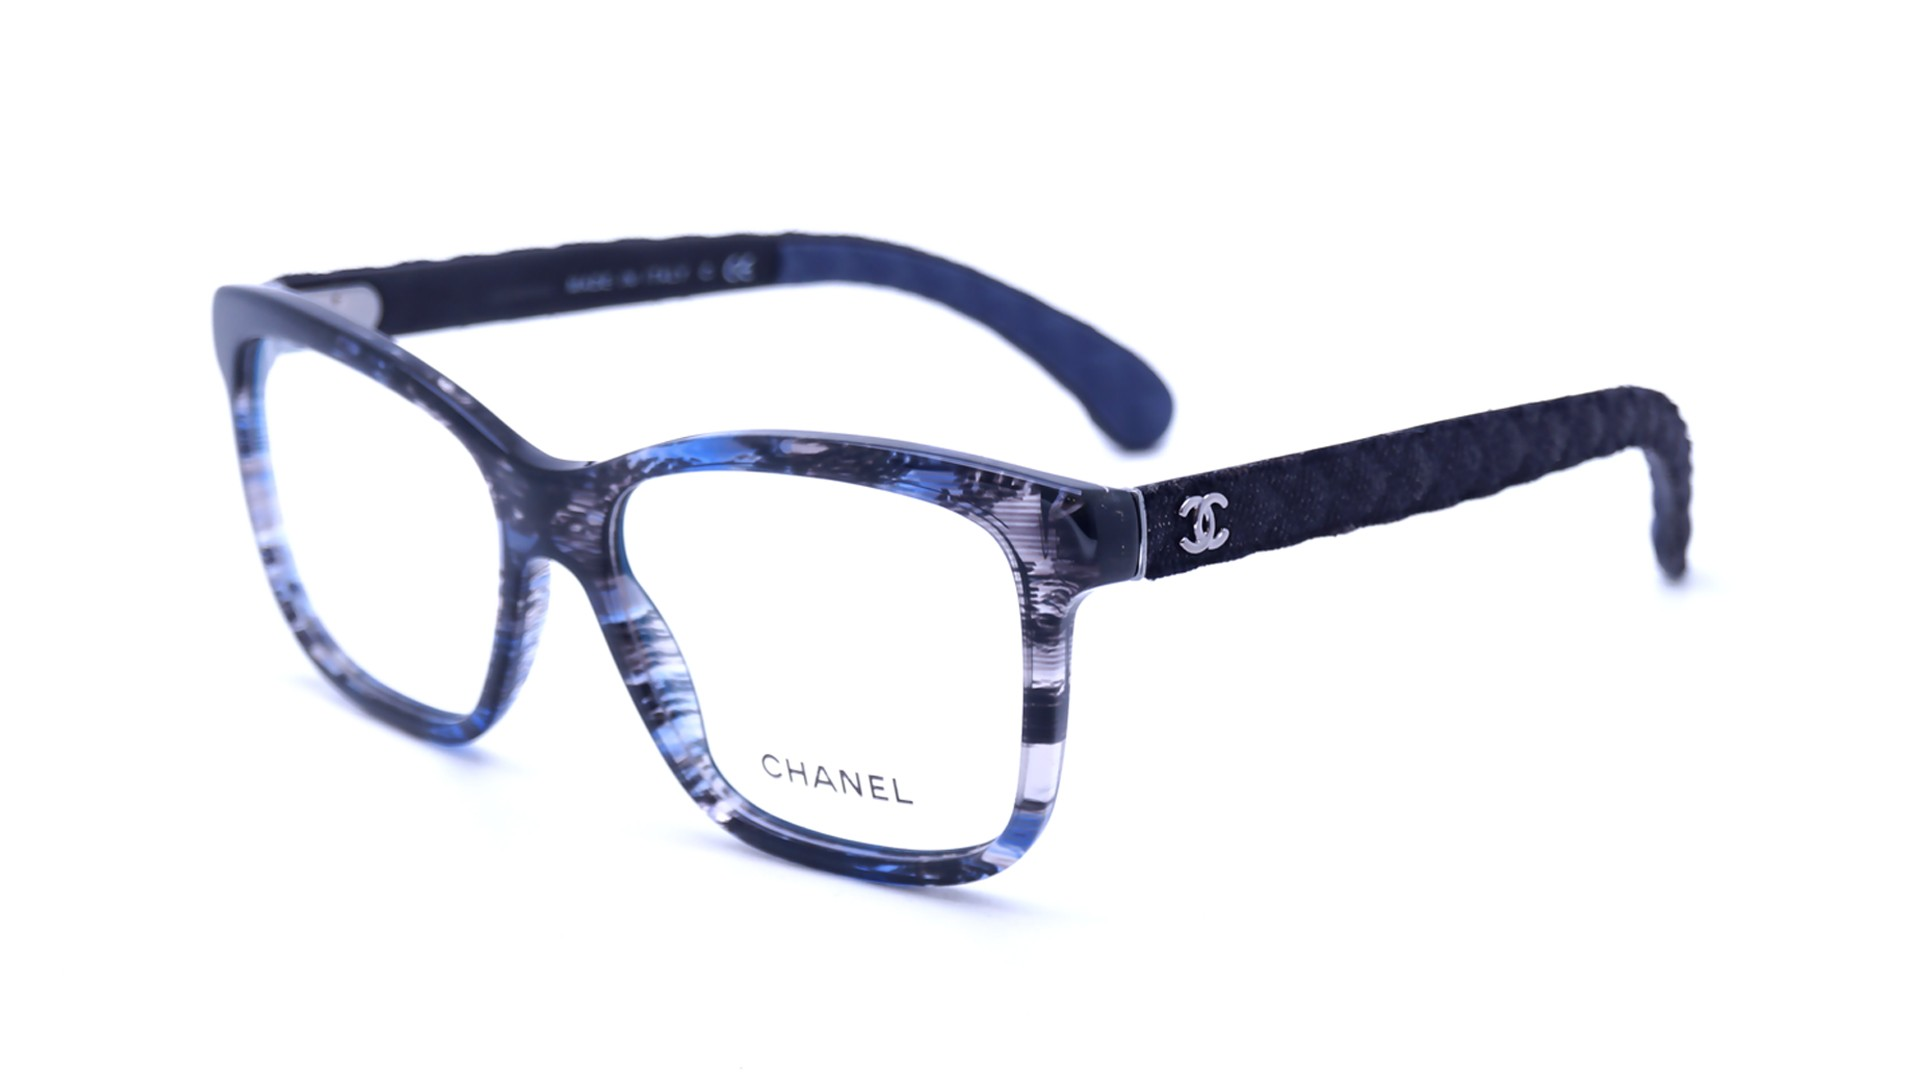 Chanel Blue Frame Glasses : Chanel Matelasse Blue CH3334 1552 54-16 Visiofactory